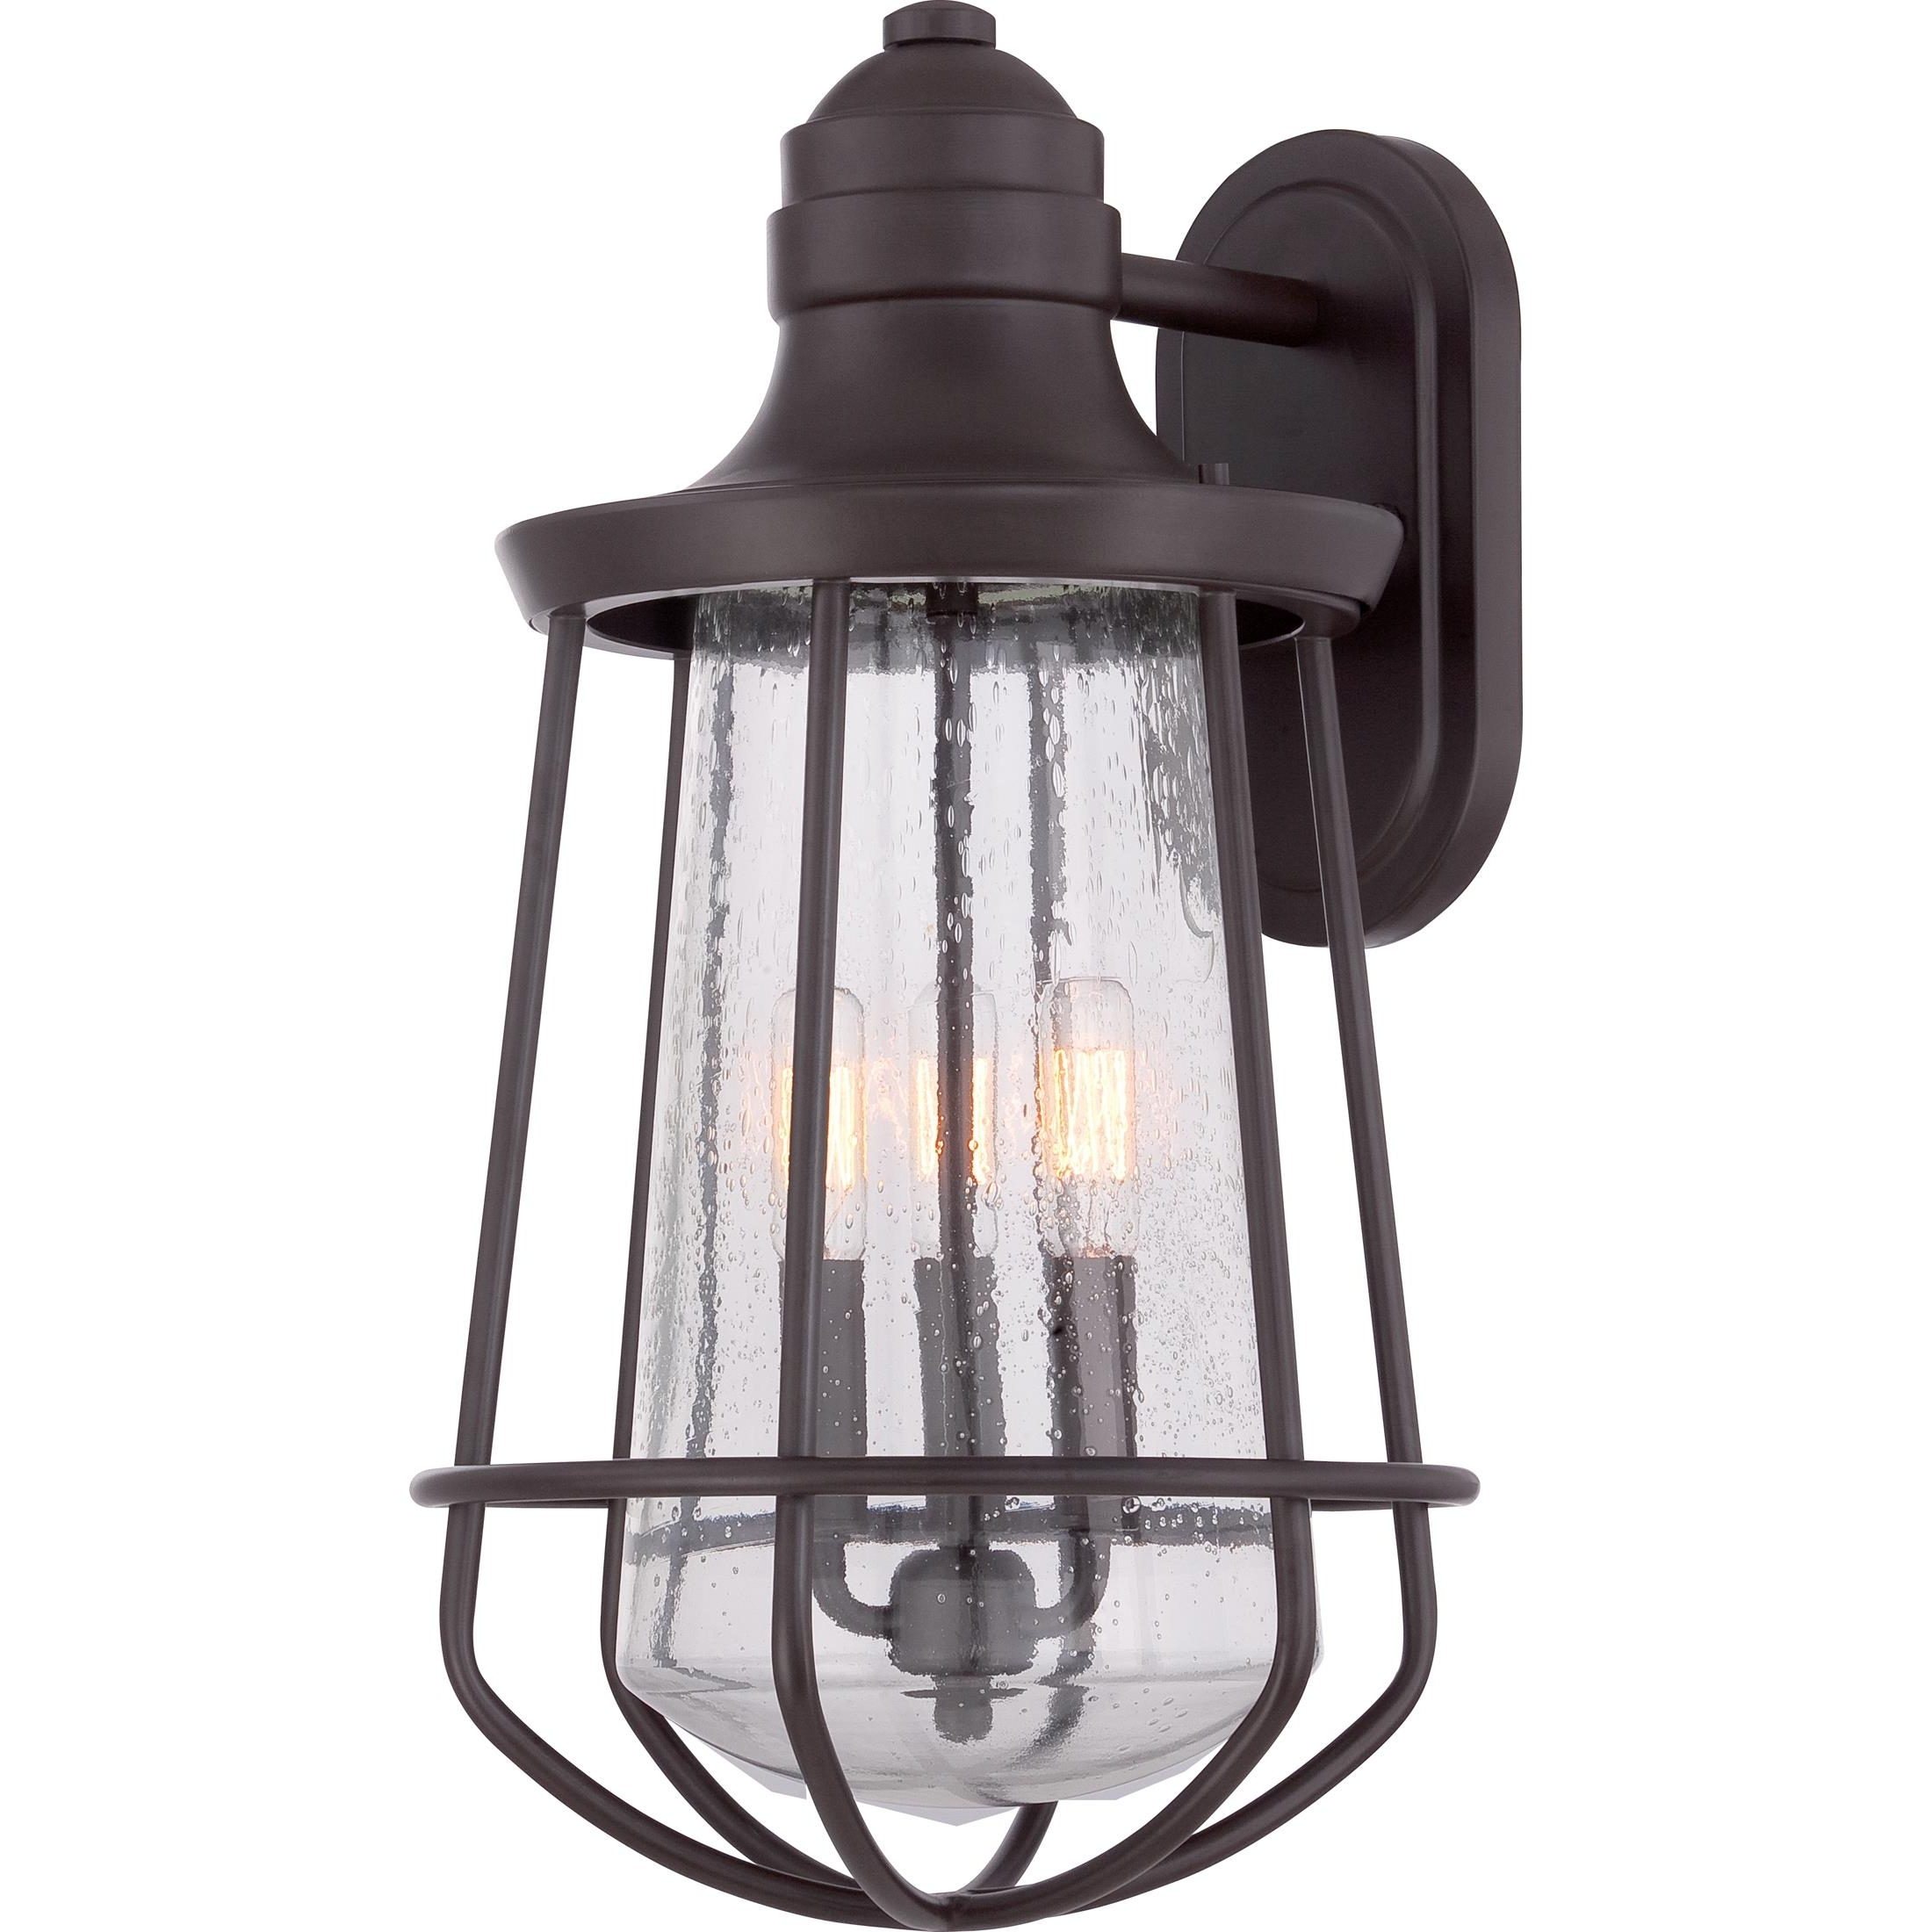 Quoizel Outdoor Lanterns With Regard To Well Liked Quoizel Lighting Mre8410Wt Shipped Direct (Gallery 4 of 20)